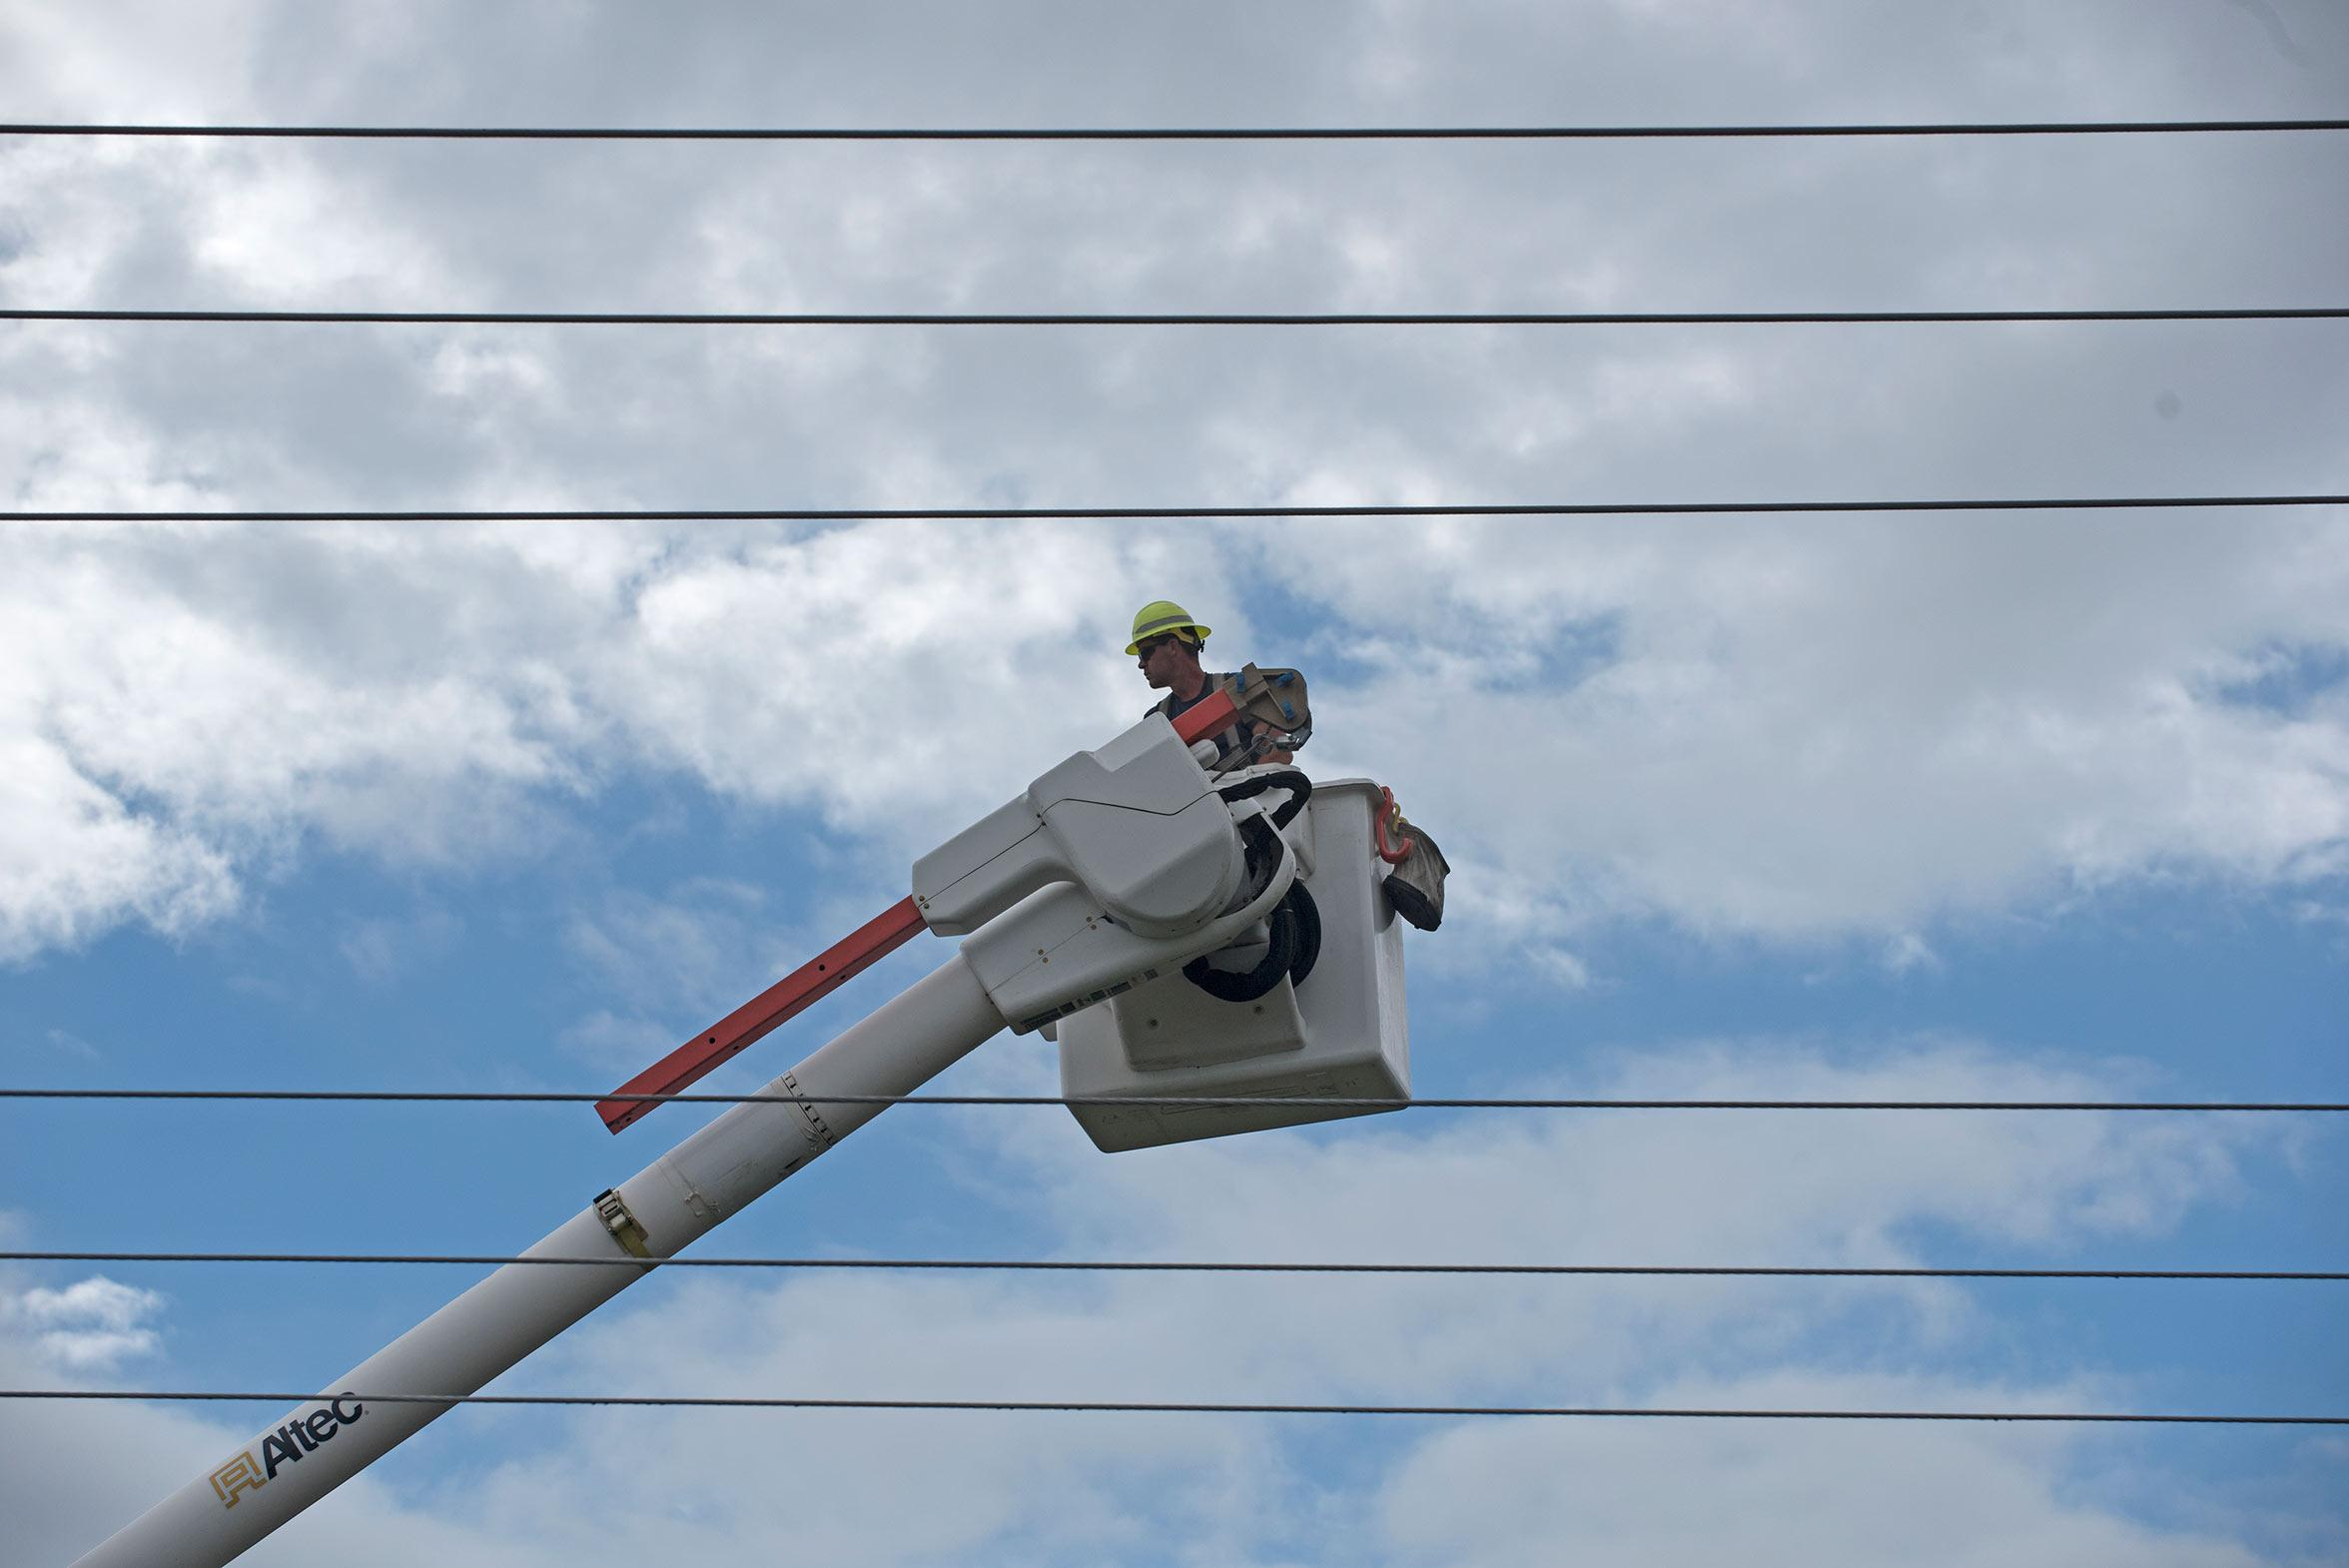 "Neil Sizemore, of Carterville, inspects power lines Friday, Sept. 30, 2016, on Wall Street in Carbondale. Sizemore has worked for the Ameren power company for more than two decades. ""I just needed a job,"" said Sizemore, who also operates a farm in Carterville. ""[It's] a way to make a living."" The lineman said his father, two uncles and three brothers have worked in the profession. (Jacob Wiegand 